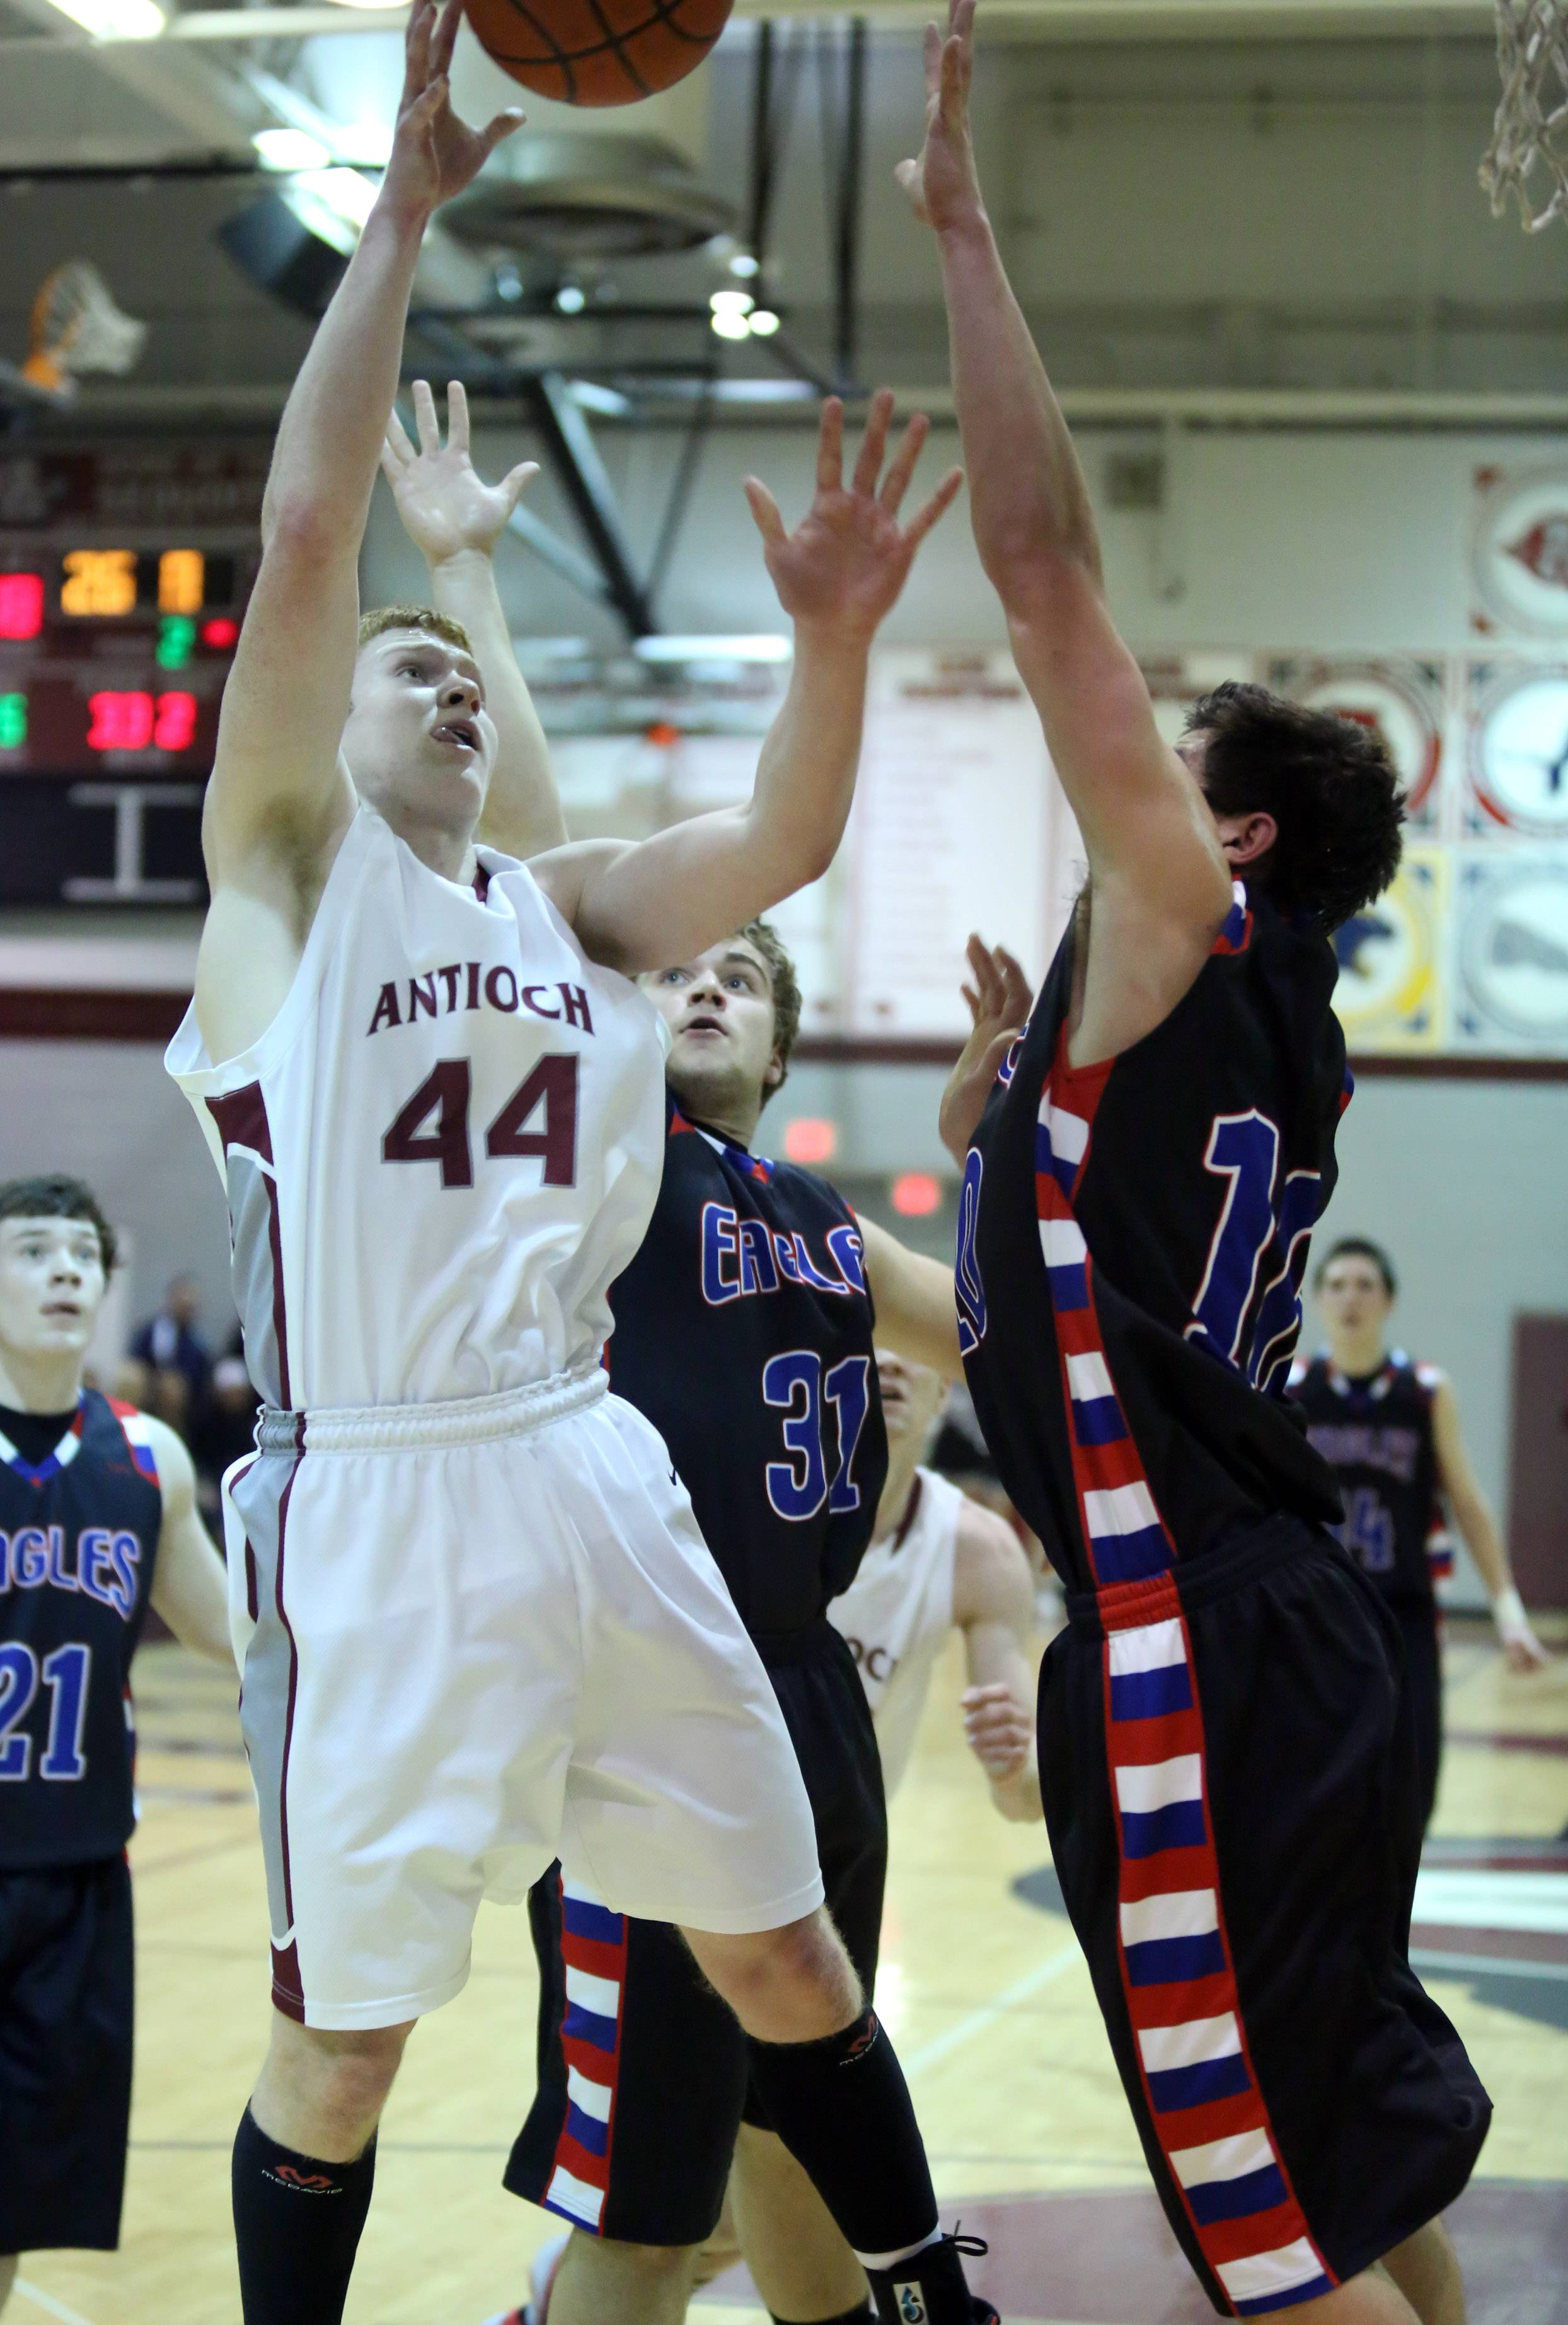 Antioch forward Jack Kovach grabs a rebound against Lakes guard Benett Haviland.